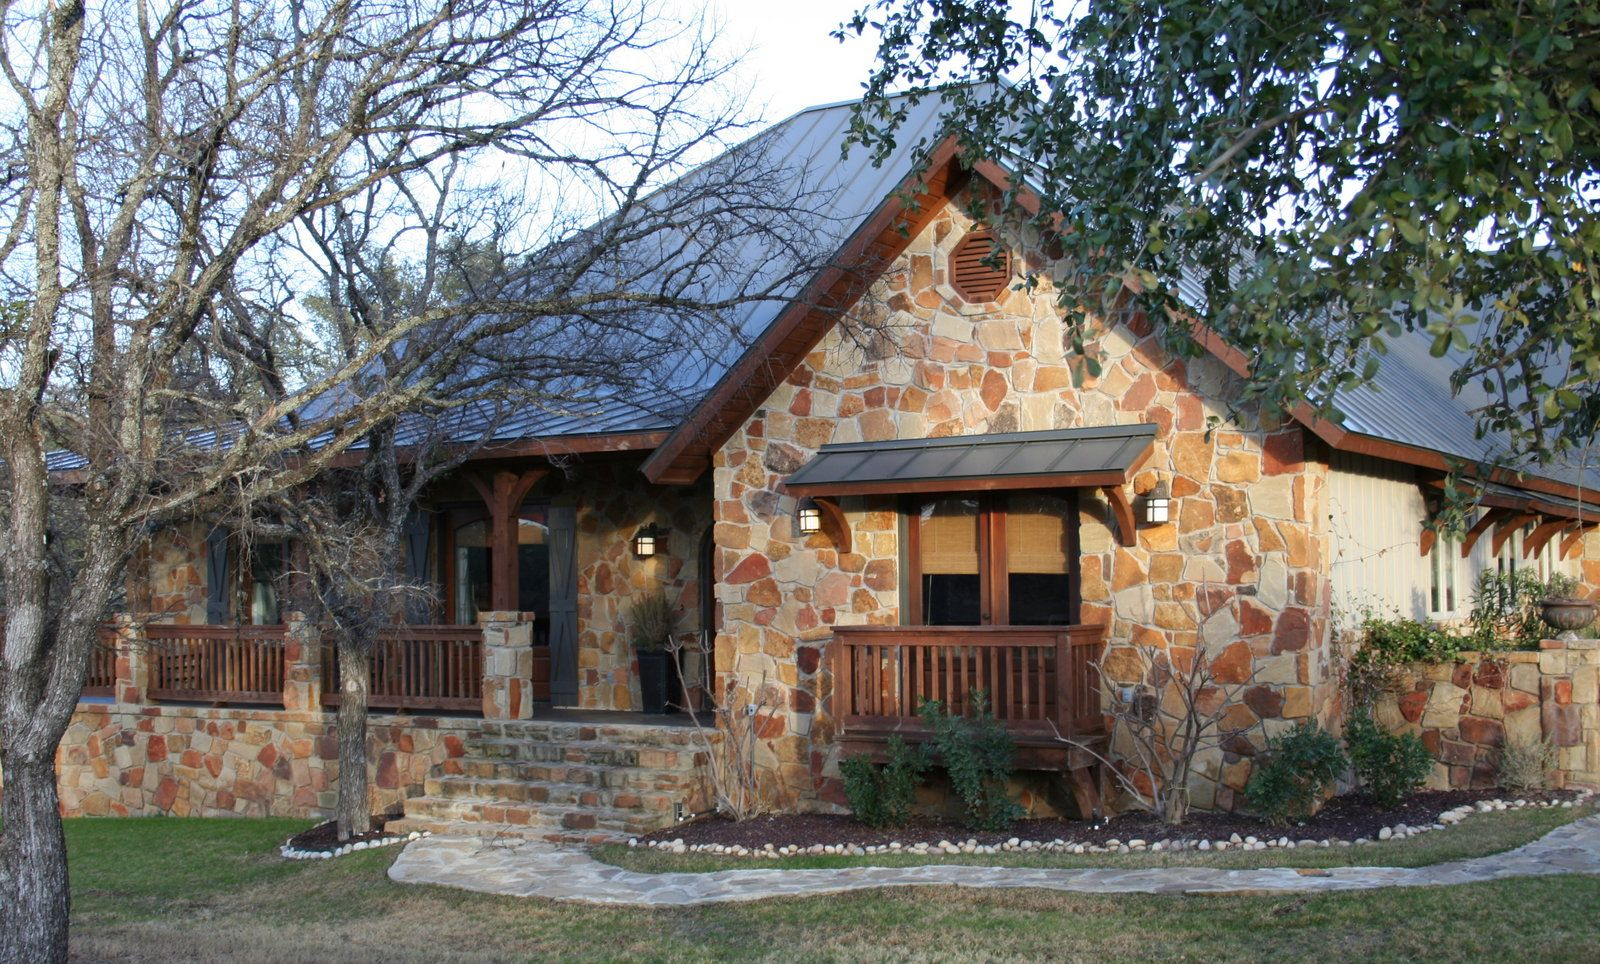 Pin By Kim Delosier On Oklahoma Stone Cottages Pinterest